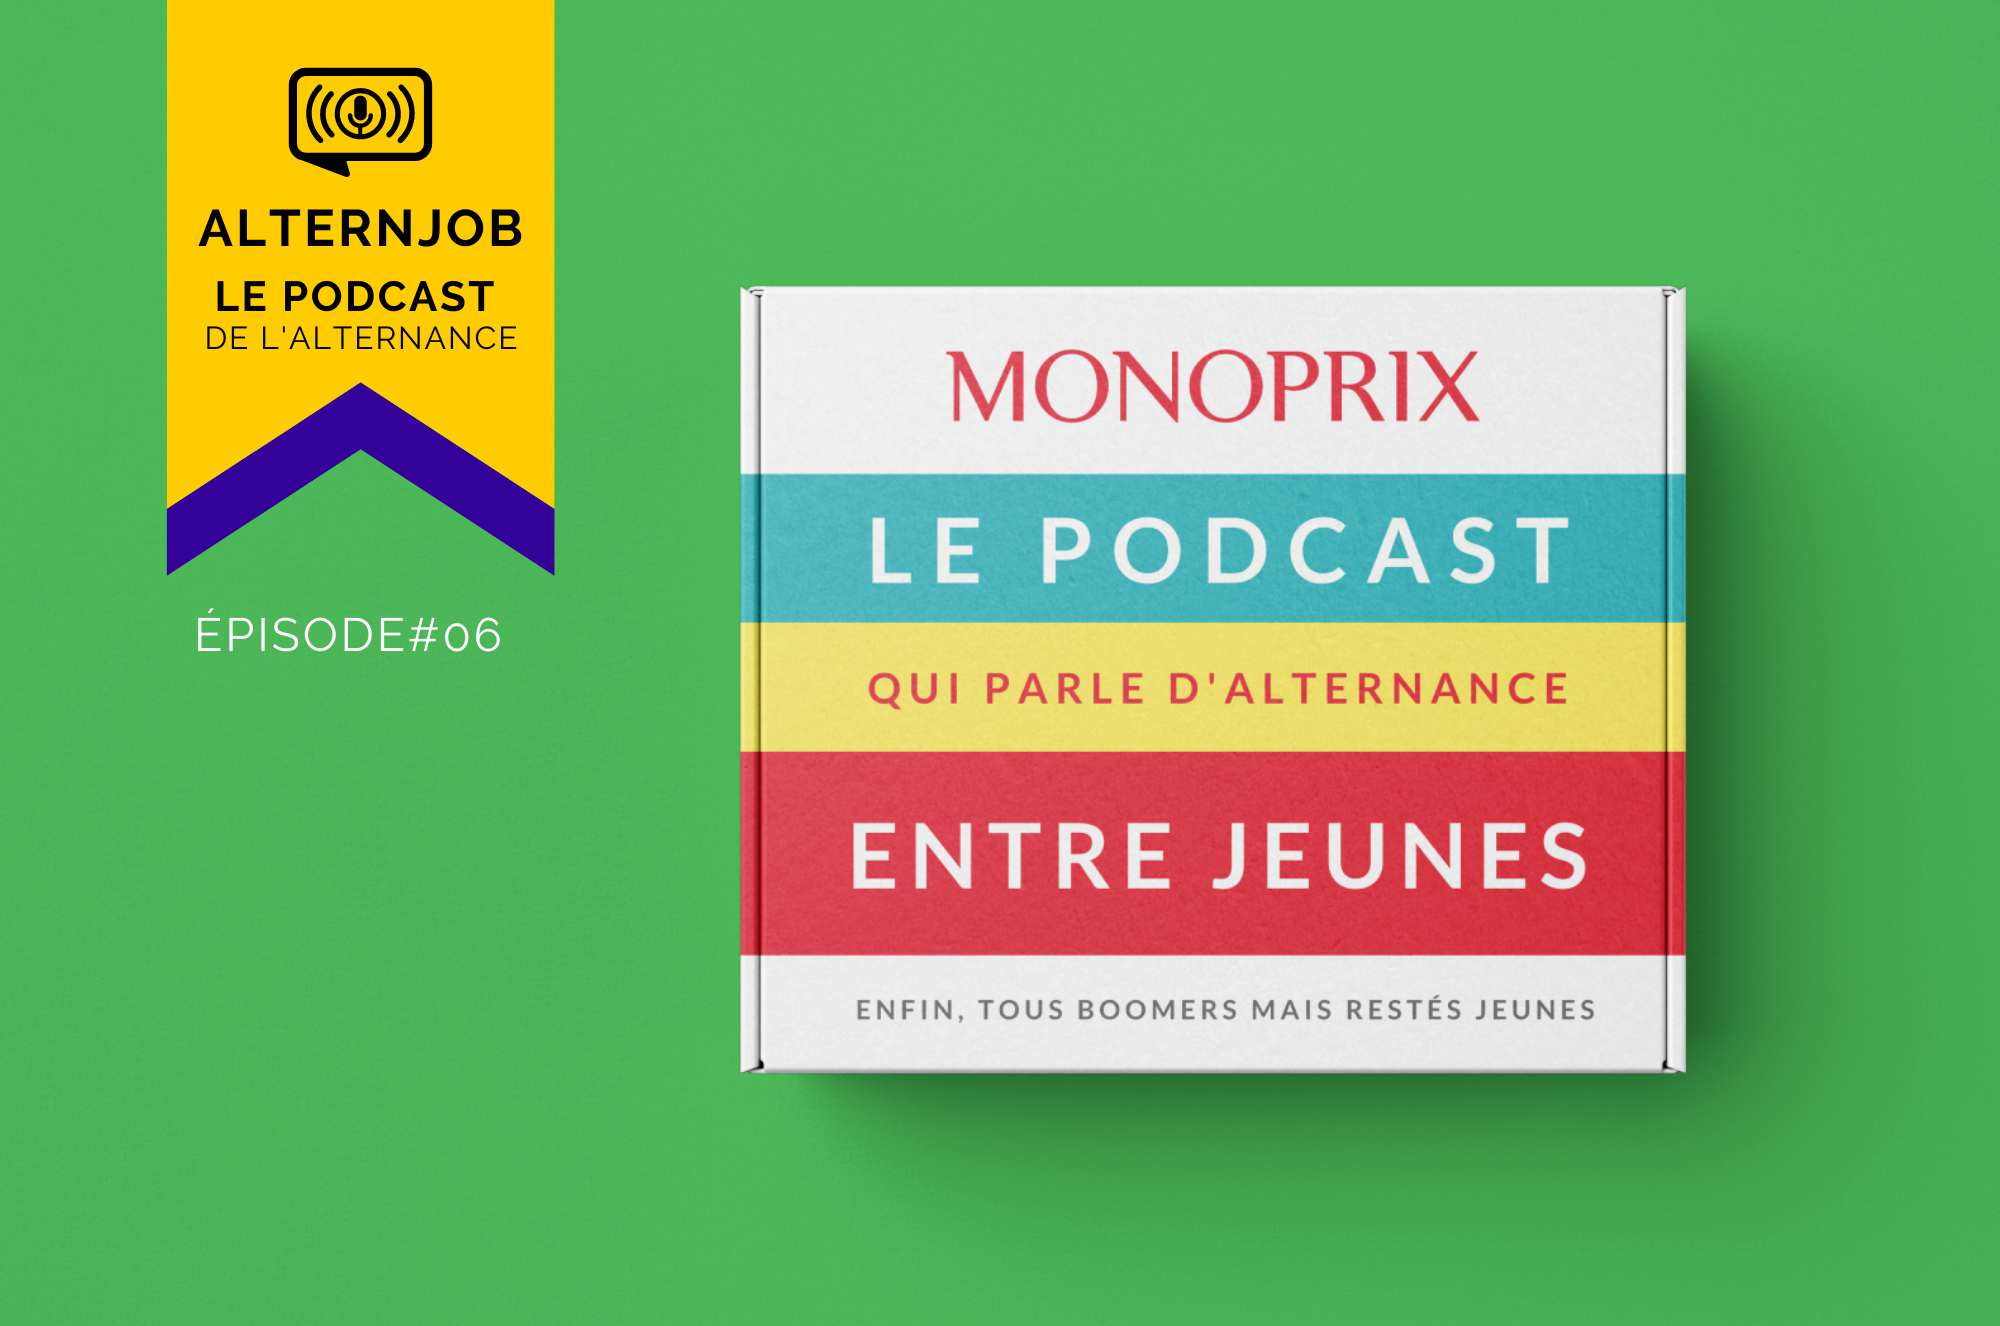 AlternJob, le podcast de l'alternance